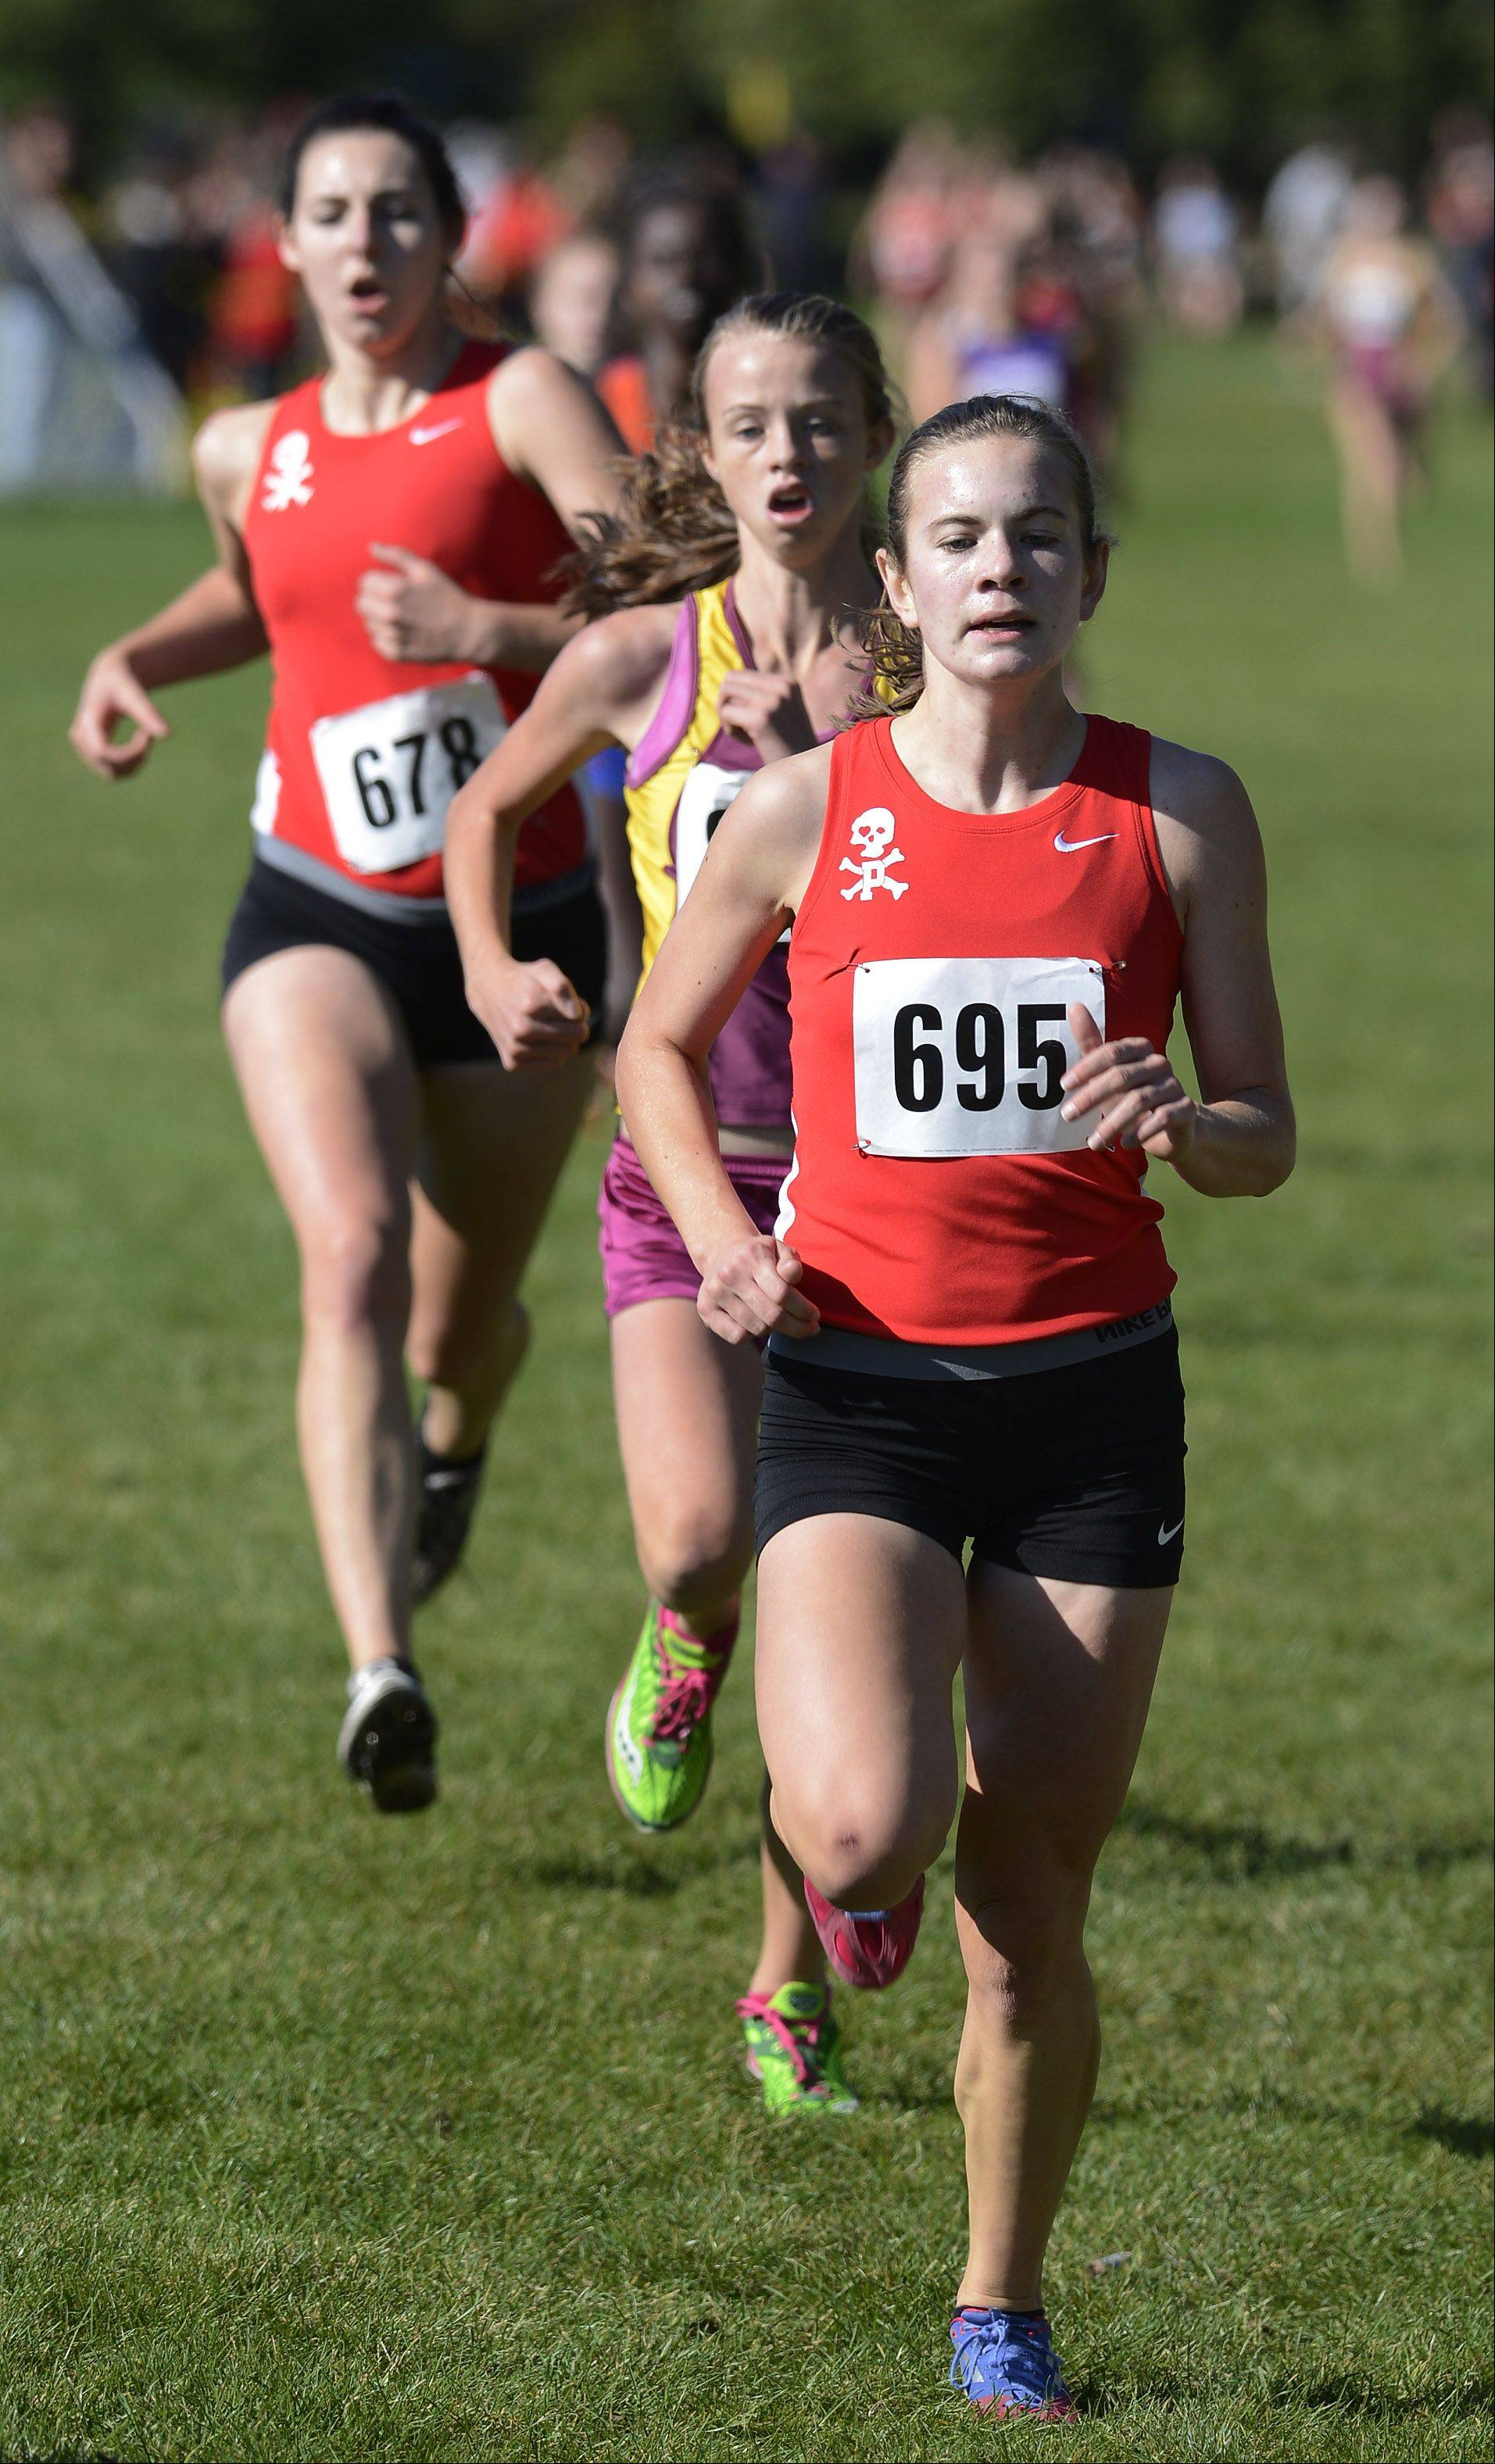 Kelly O'Brien of Palatine, Elie O'Connell of Schaumburg and Elizabeth Cox of Palatine finish third, fourth and fifth, respectively, during the Mid-Suburban League cross country meet at Willow Stream Park in Buffalo Grove Saturday.